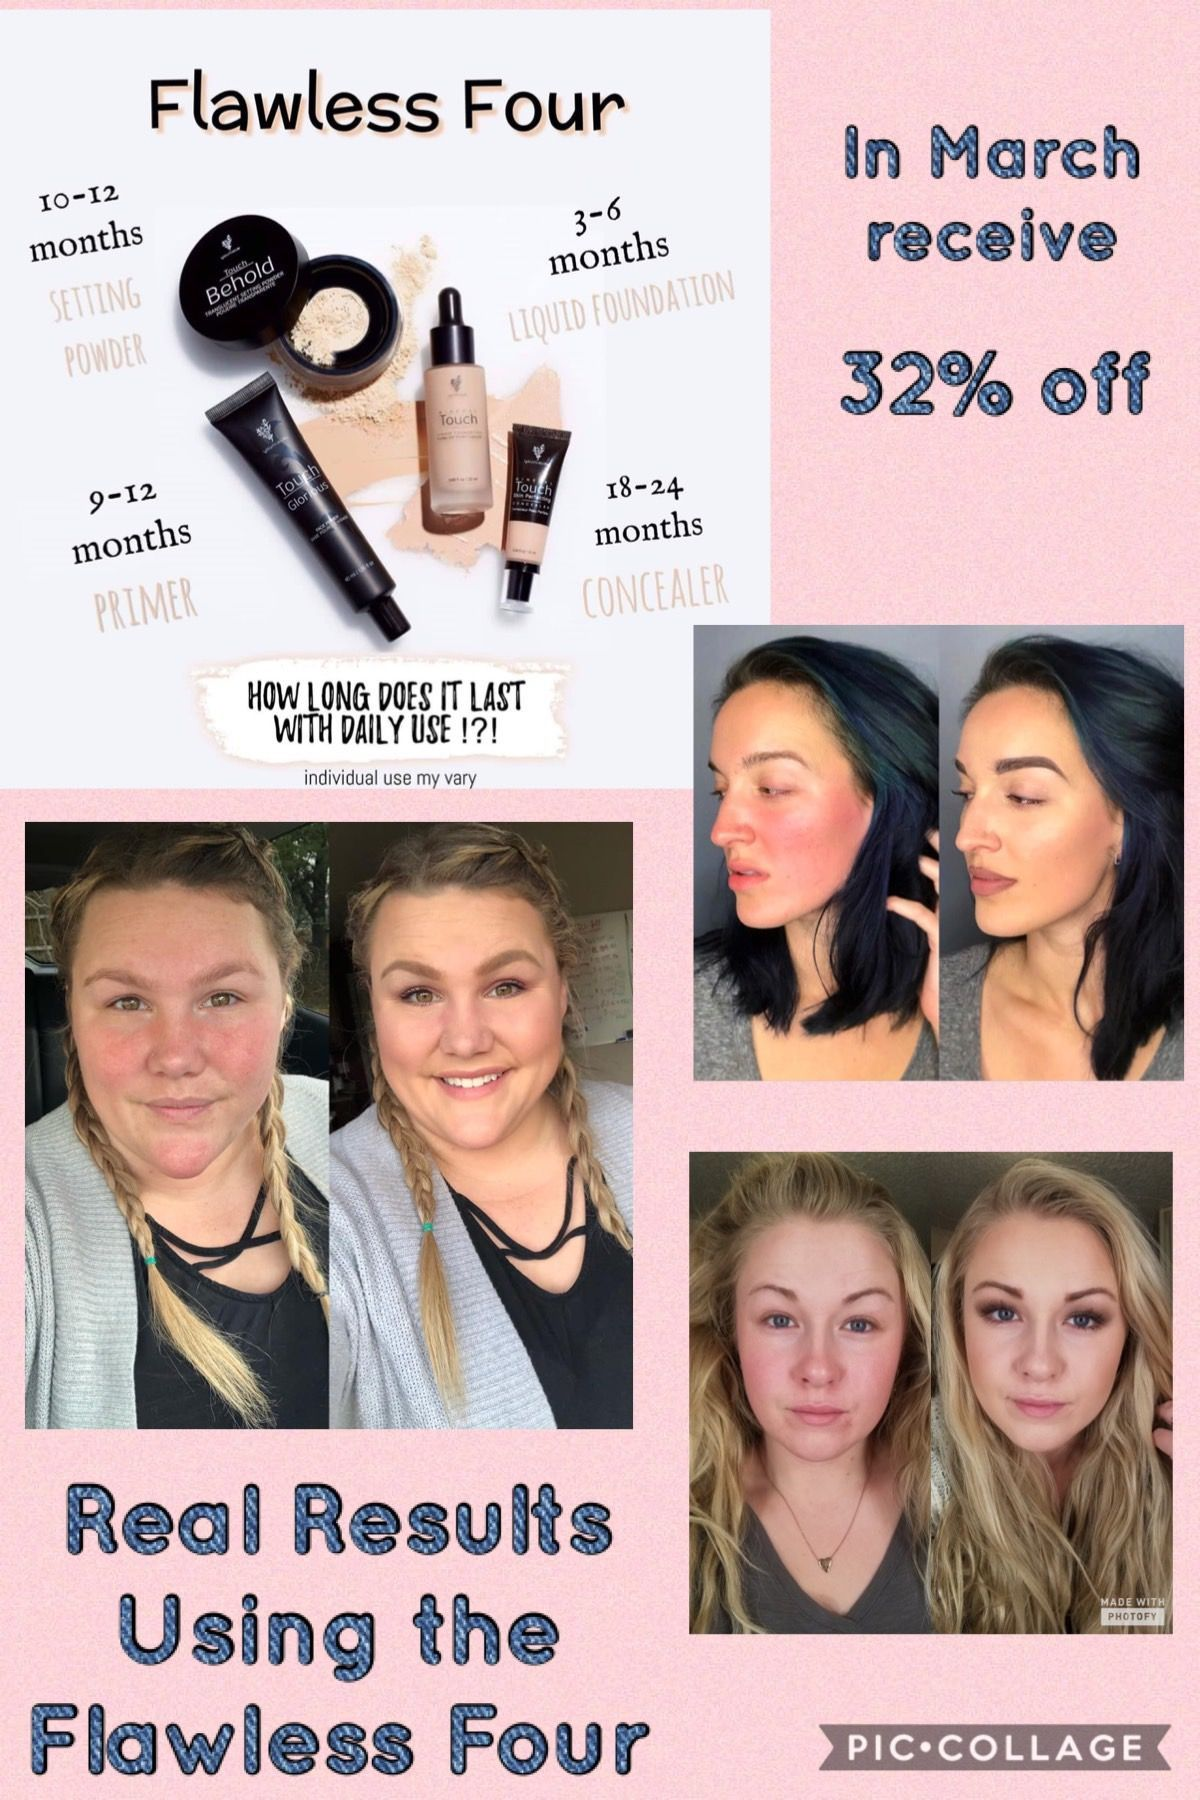 Makeup coverage for all skin types. Acne coverage, rosacea